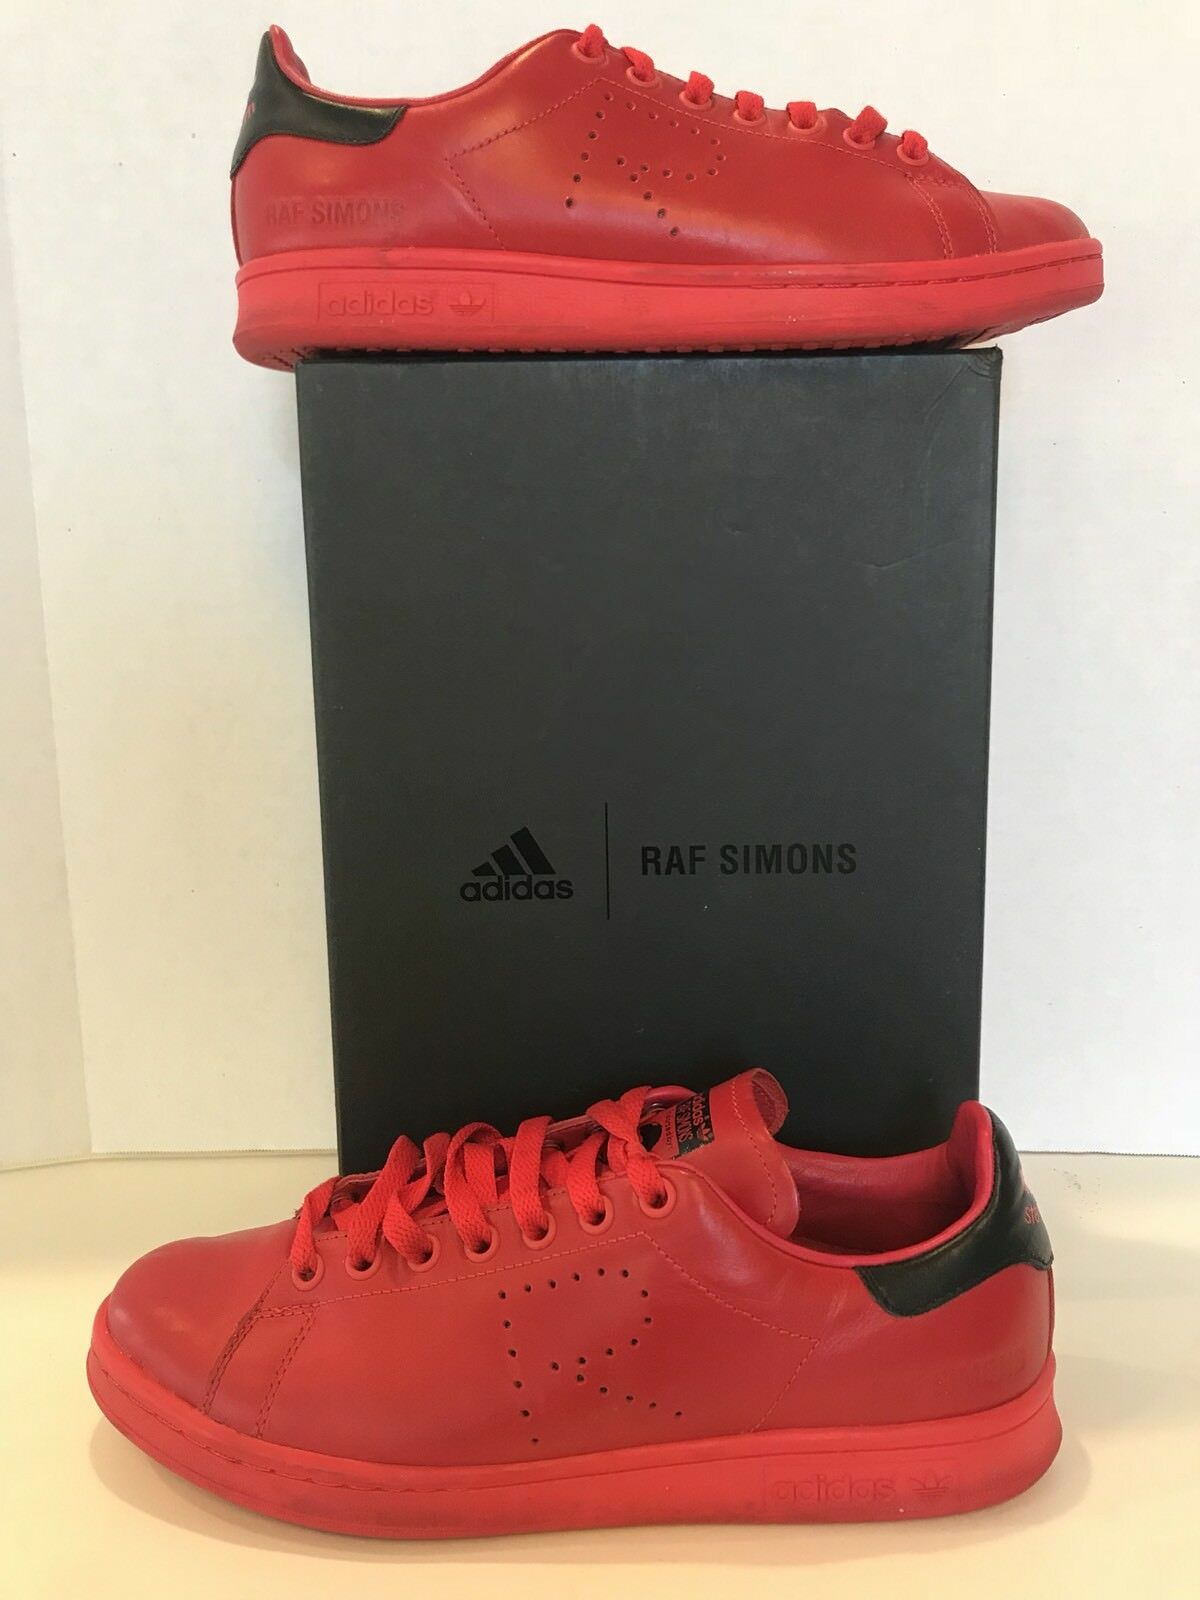 ADIDAS ADIDAS ADIDAS by RAF SIMONS Stan Smith LTD EDITION Red Leather SZ 8 Sneakers ZR-31 46b30d